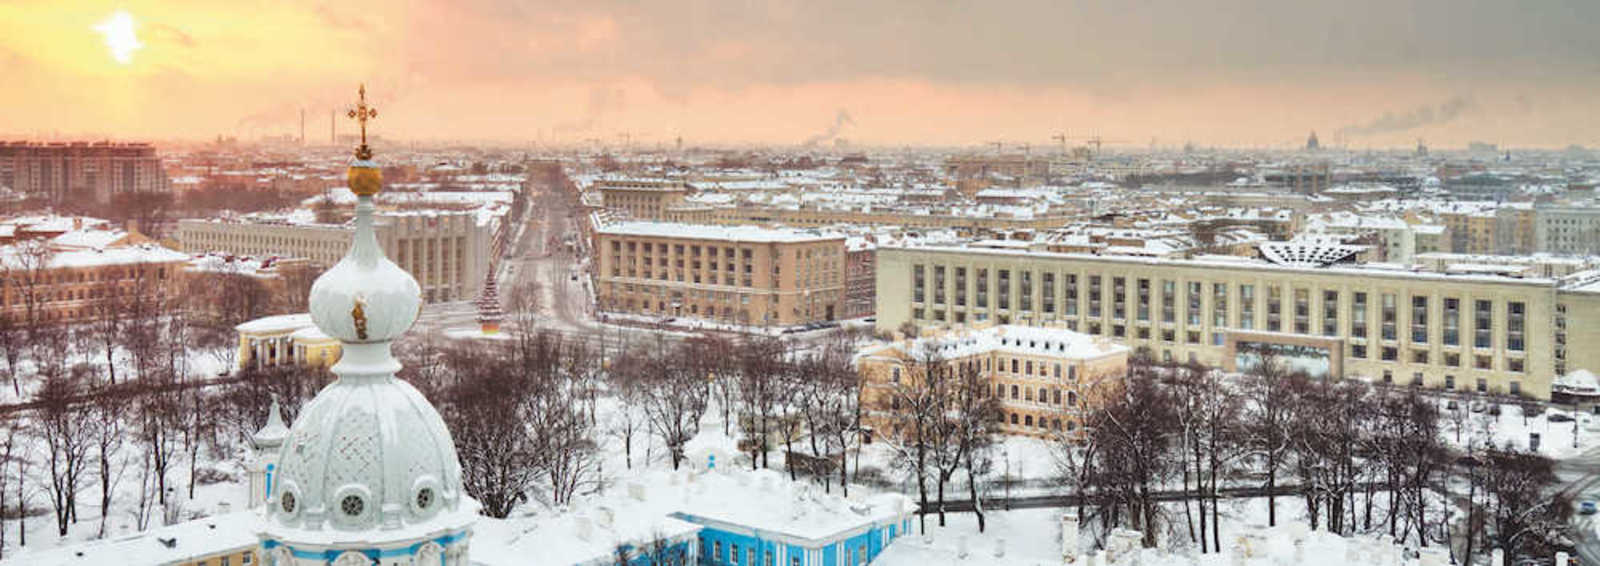 St Petersburg in the snow